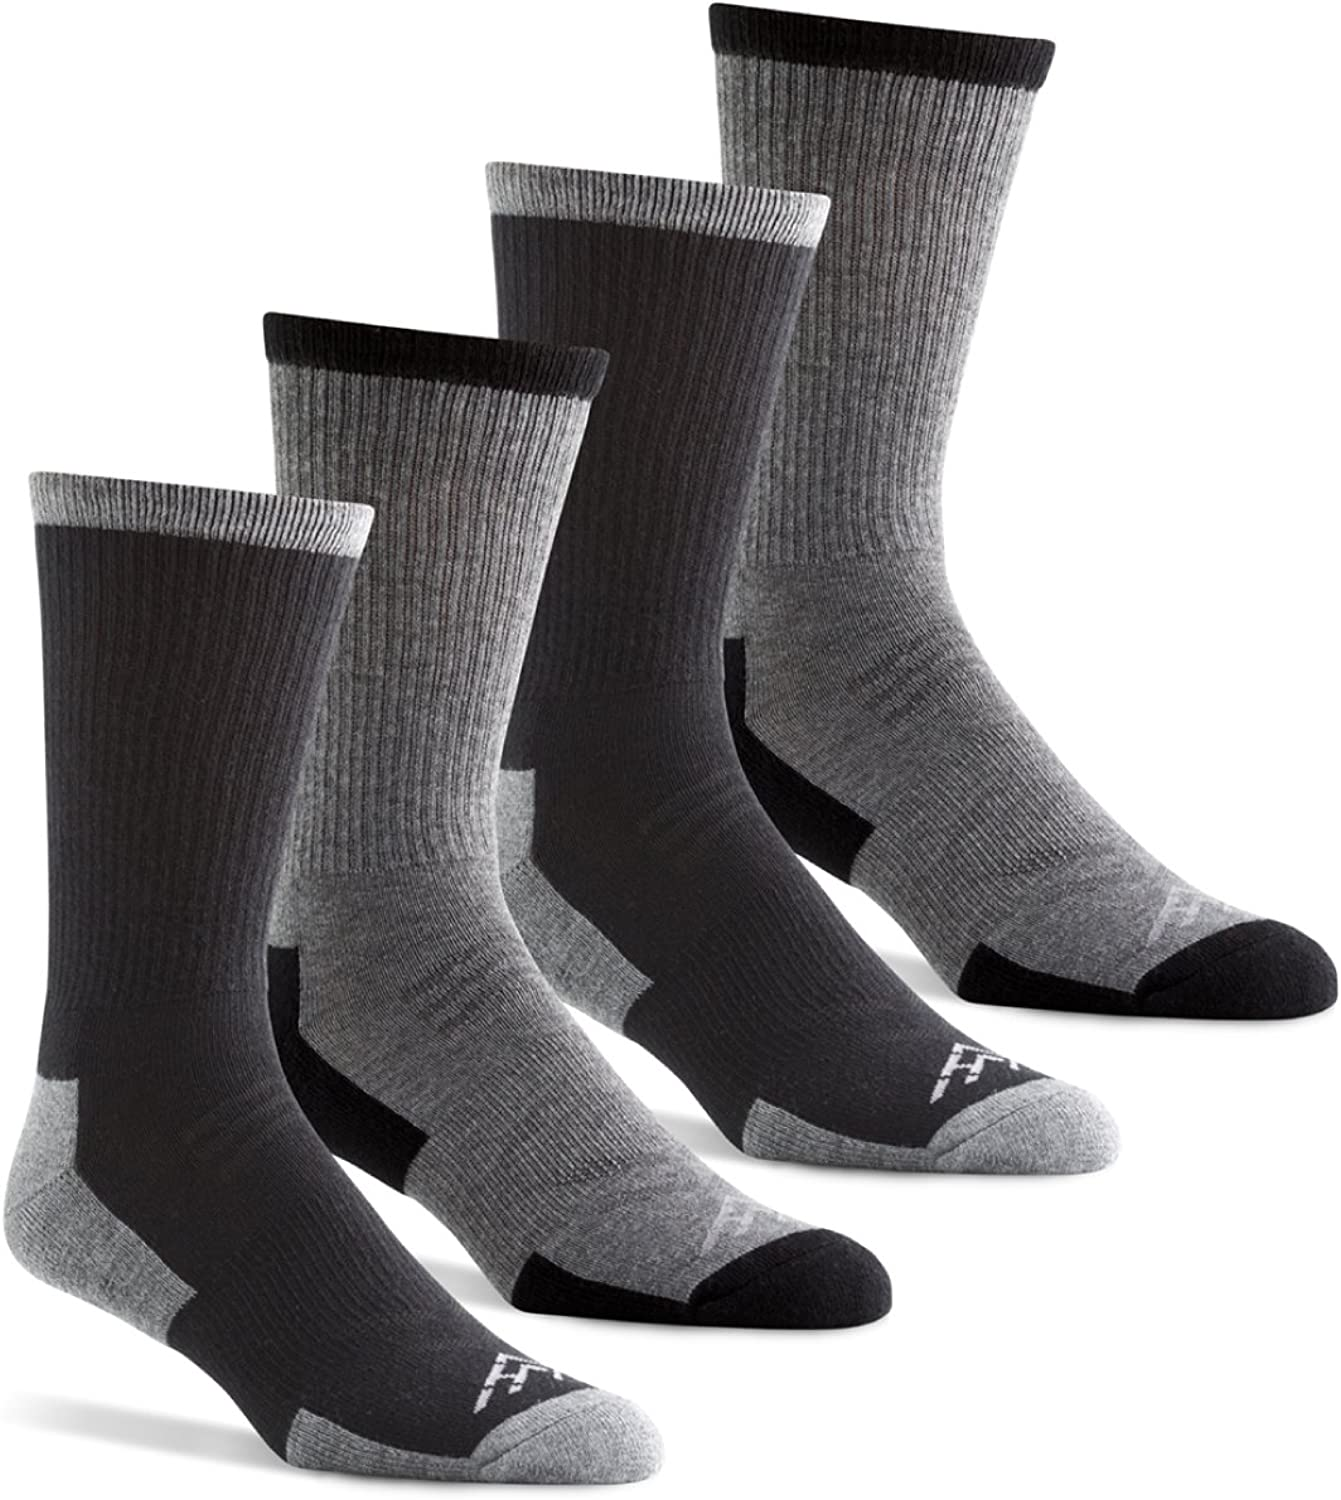 Hidden Peak Outdoor Men's Hiking Crew Socks